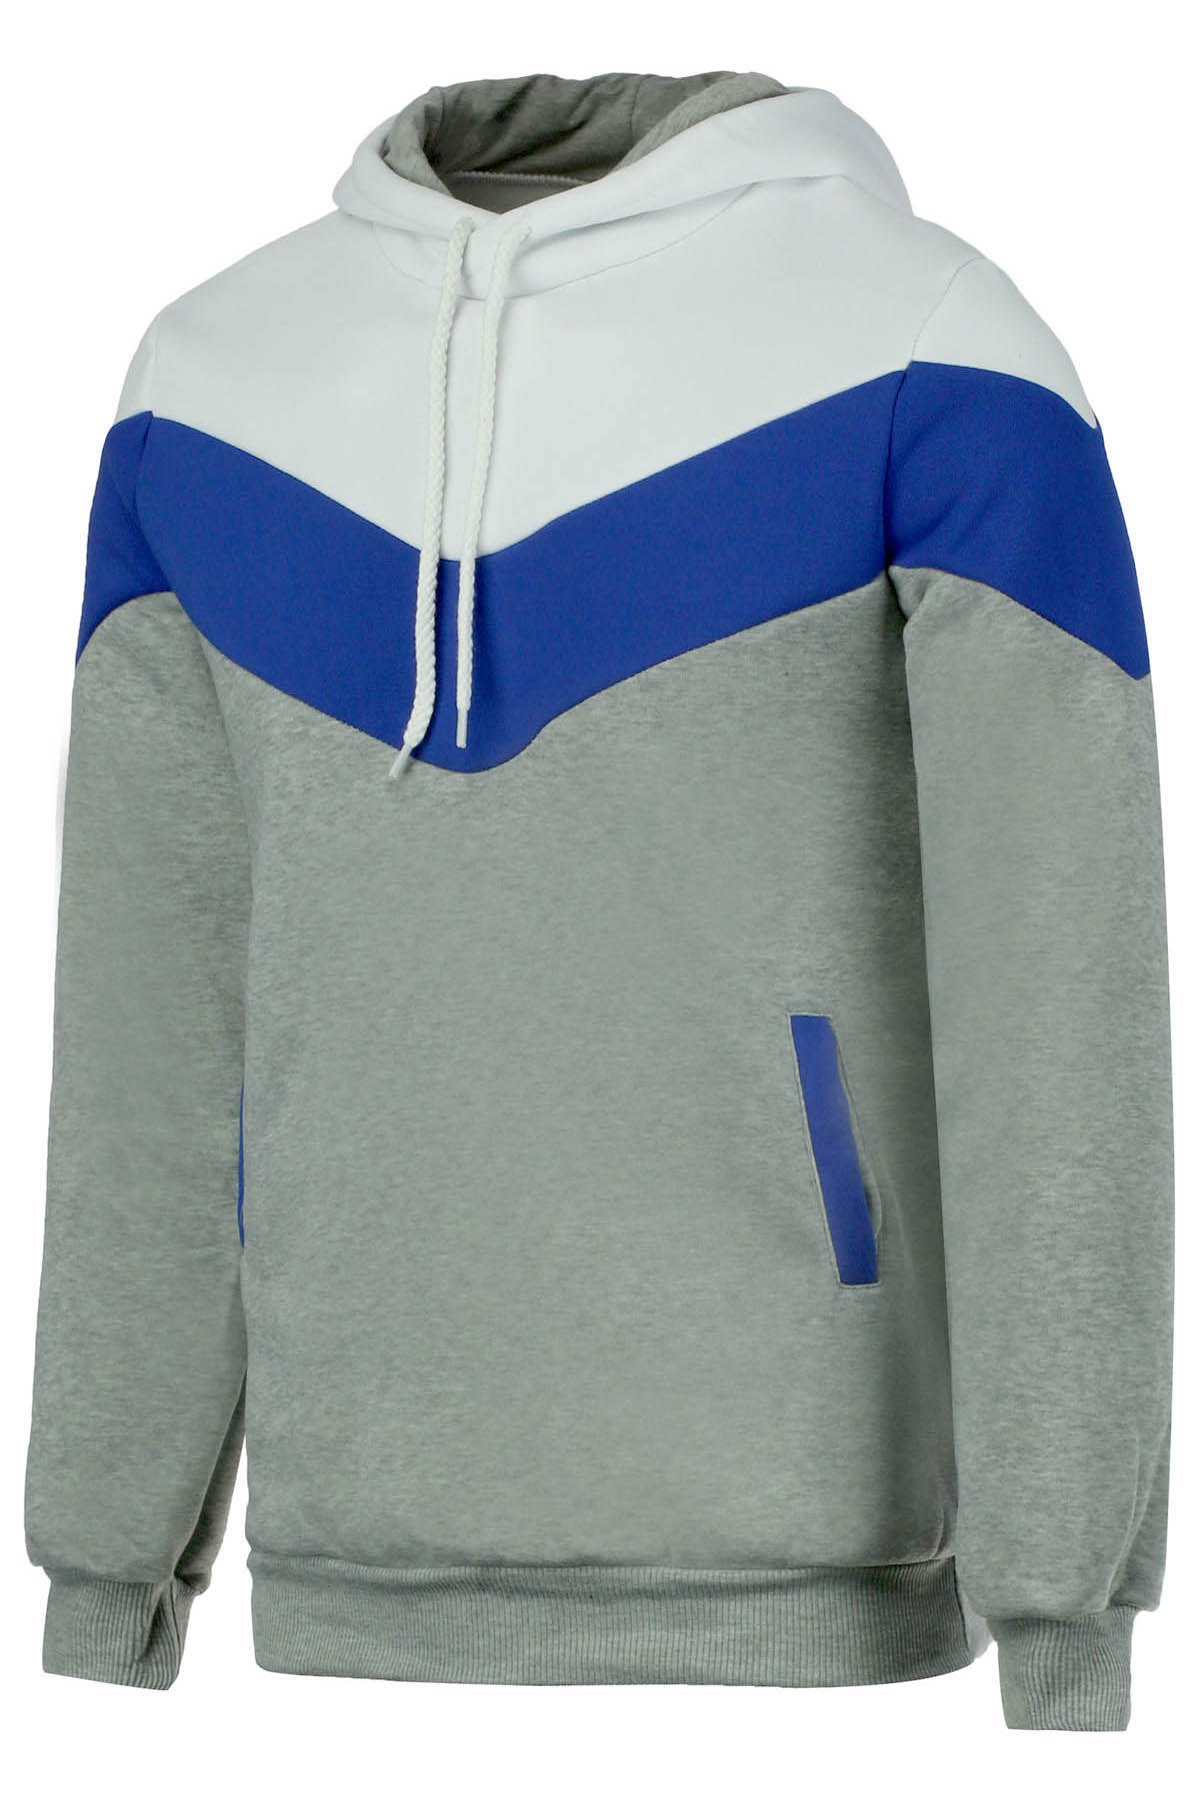 Slimming Trendy Hooded Personality Color Splicing Long Sleeves Mens Thicken HoodiesMEN<br><br>Size: 2XL; Color: LIGHT GRAY; Material: Cashmere,Cotton; Shirt Length: Regular; Sleeve Length: Full; Style: Casual; Weight: 0.425kg; Package Contents: 1 x Hoodies;